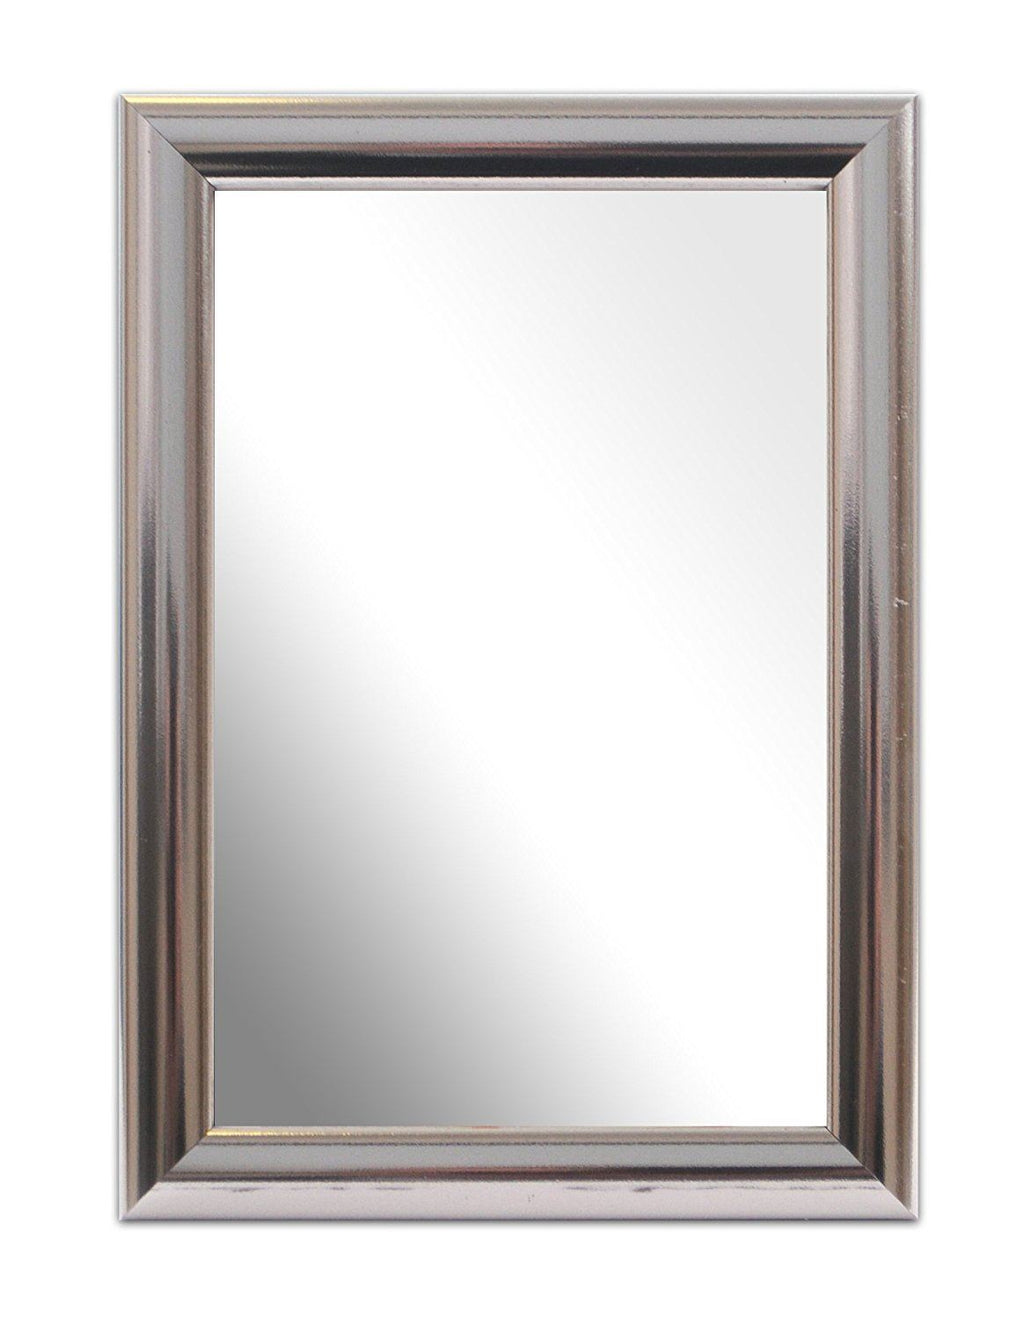 Inov8 British Made 6x4-inch Traditional Mirror, Value Chrome